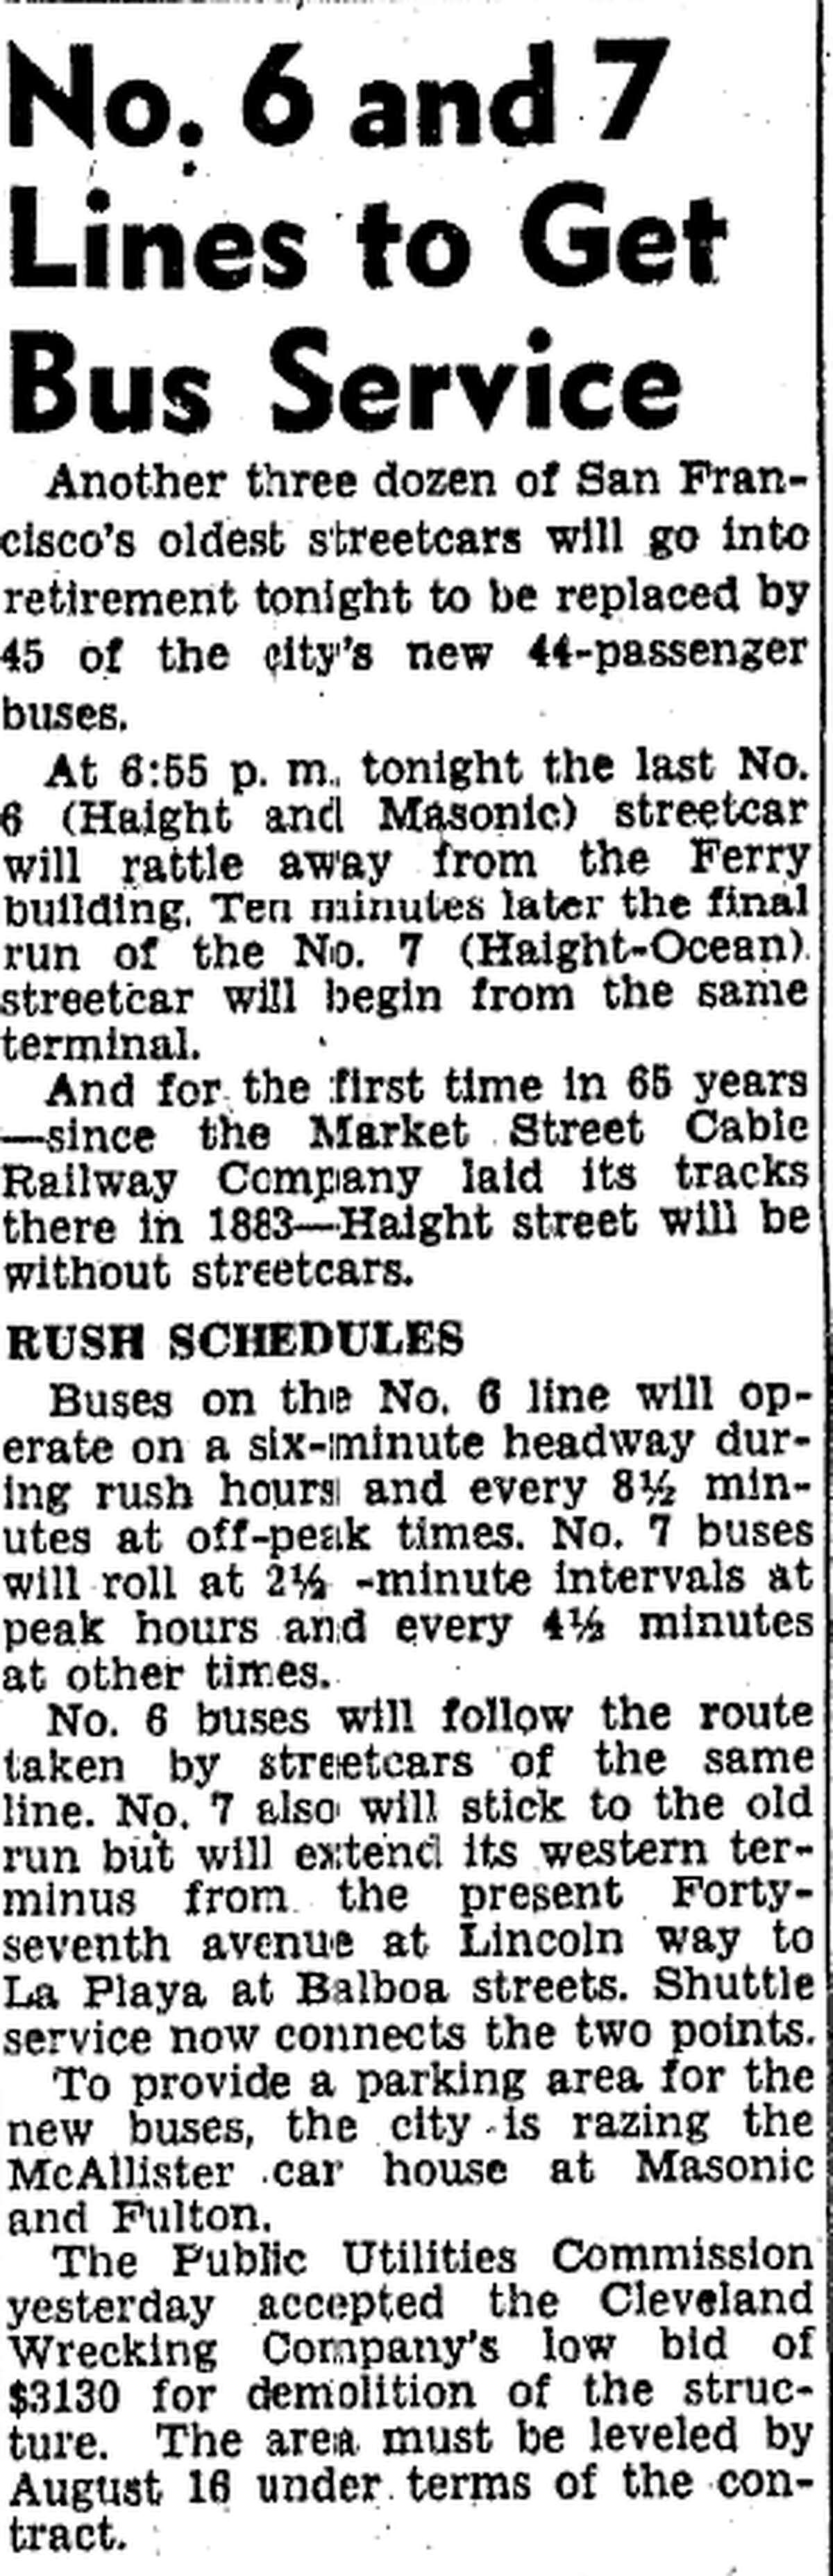 An old San Francisco Chronicle clipping from 1948 hails the conversion the No. 6 and No. 7 streetcar lines into bus lines.